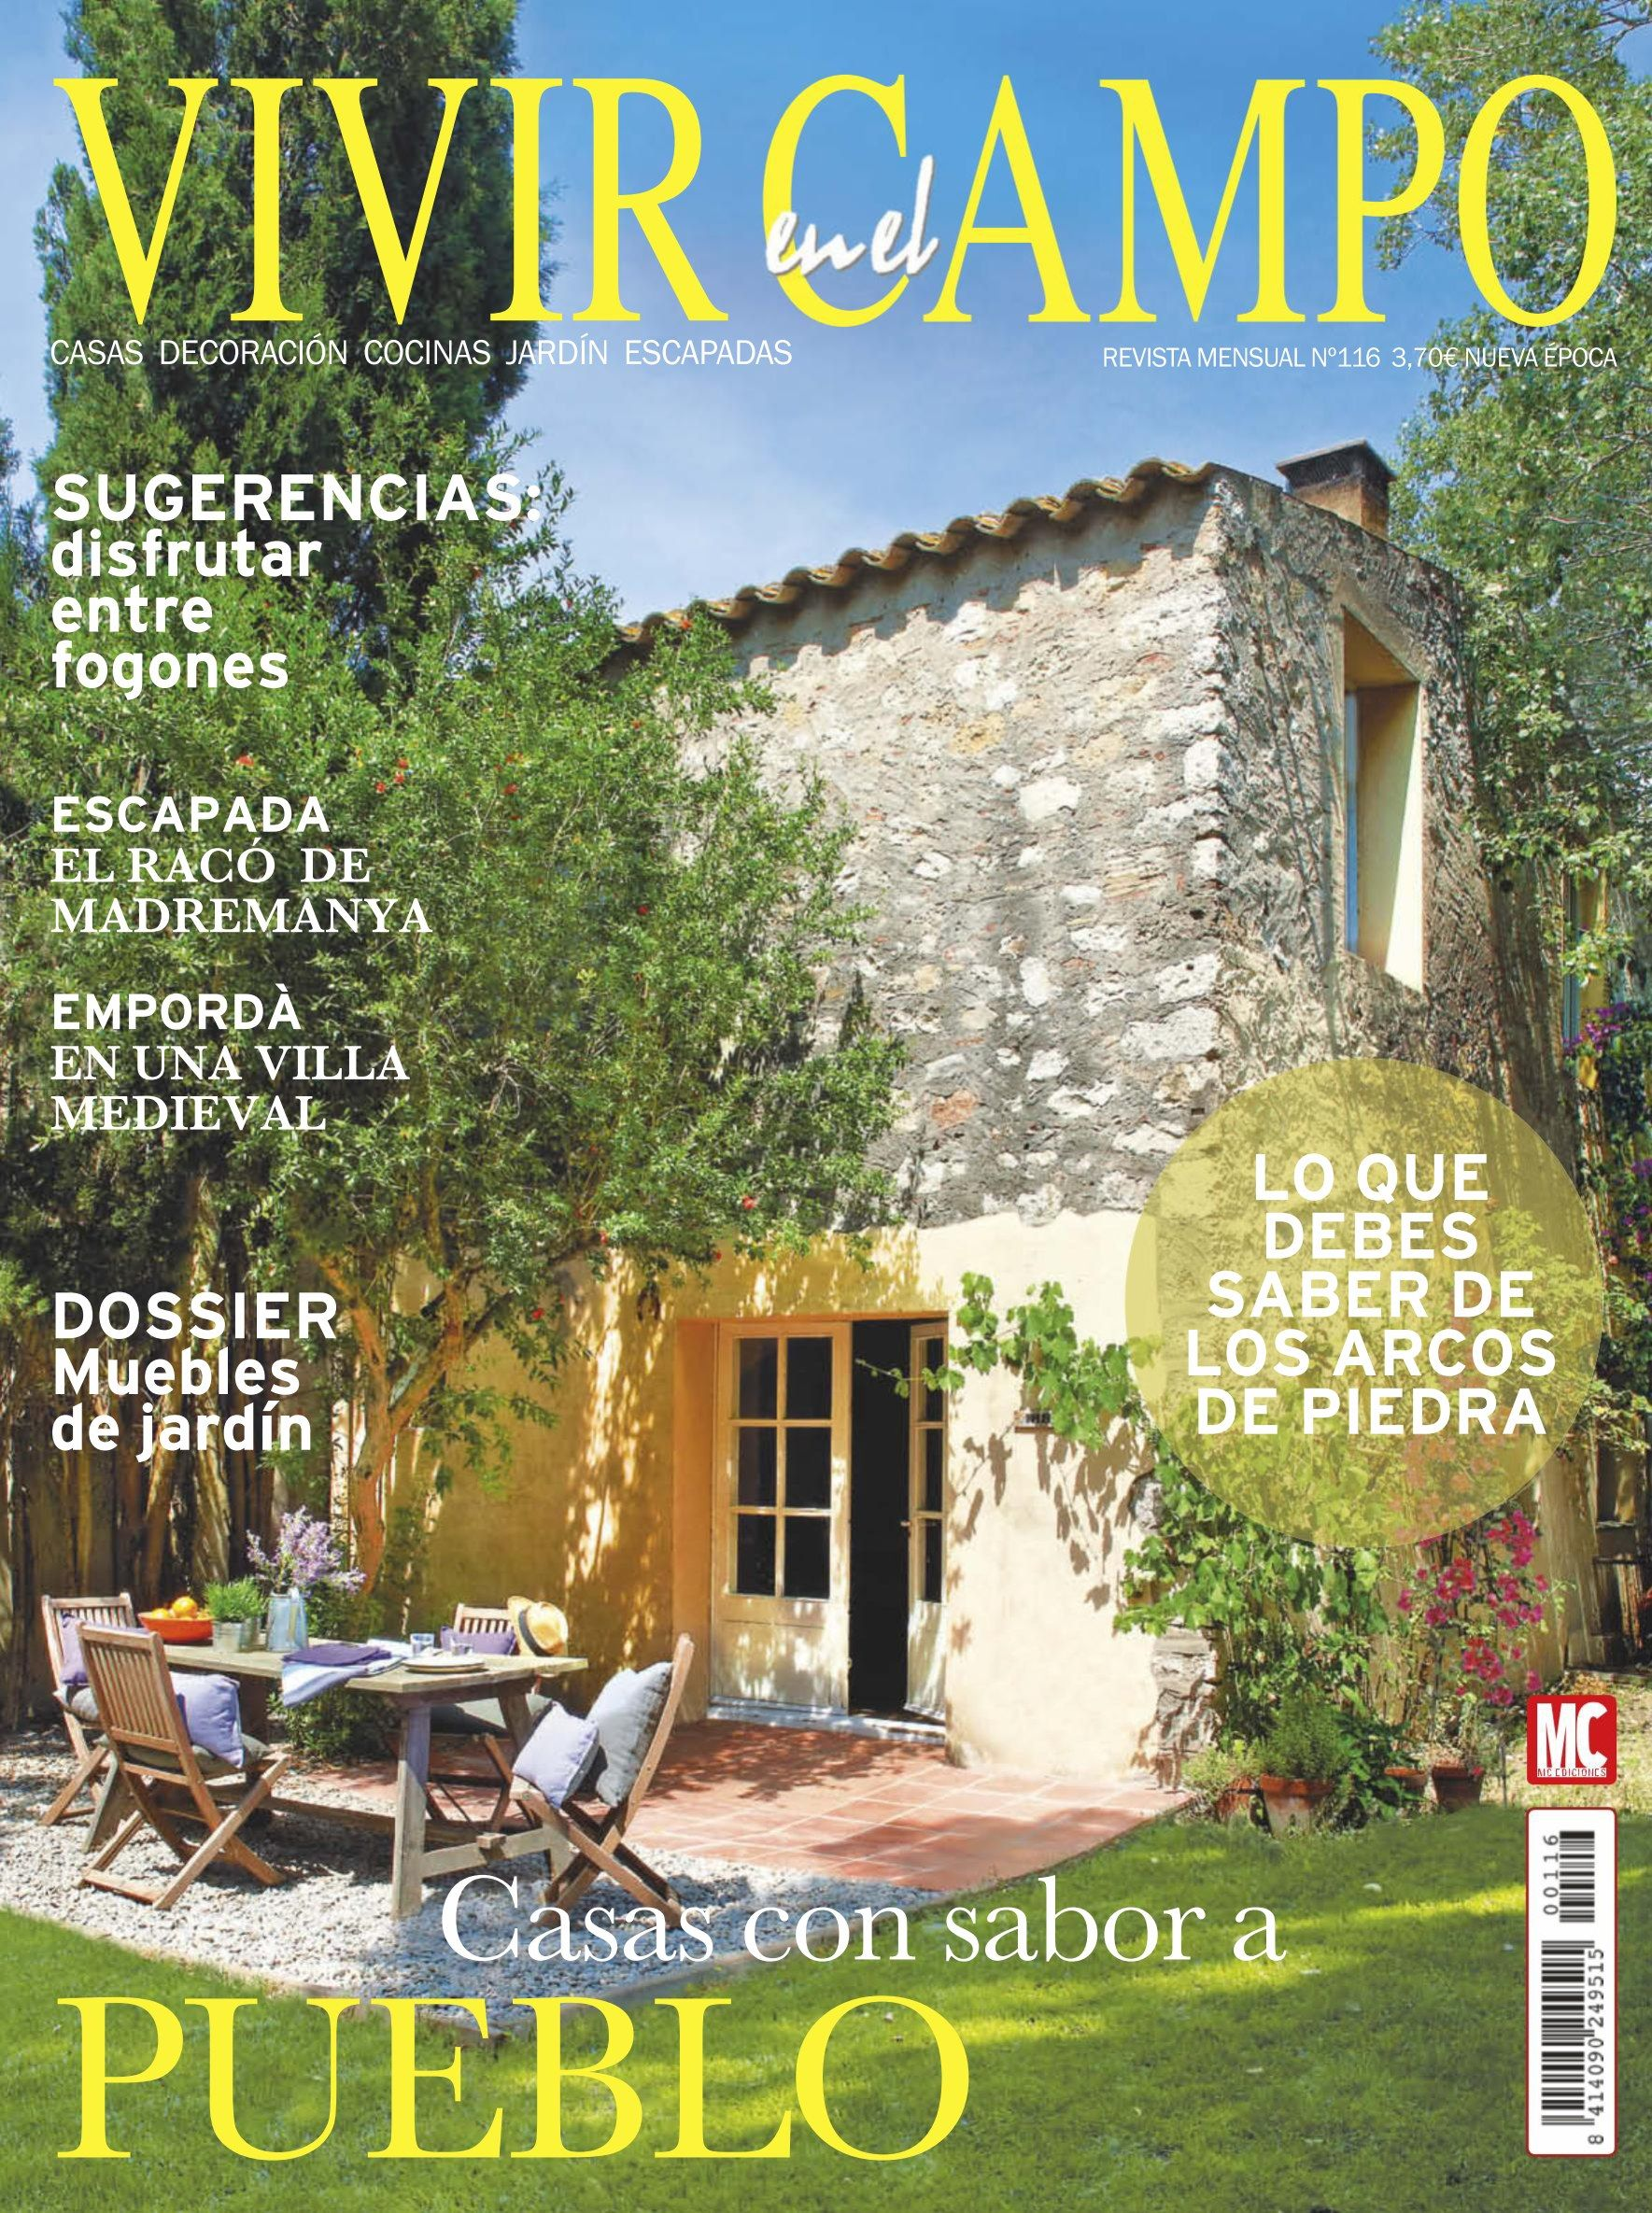 Casa y jardin revista decoracion amazing ideas brutales for Casa jardin revista